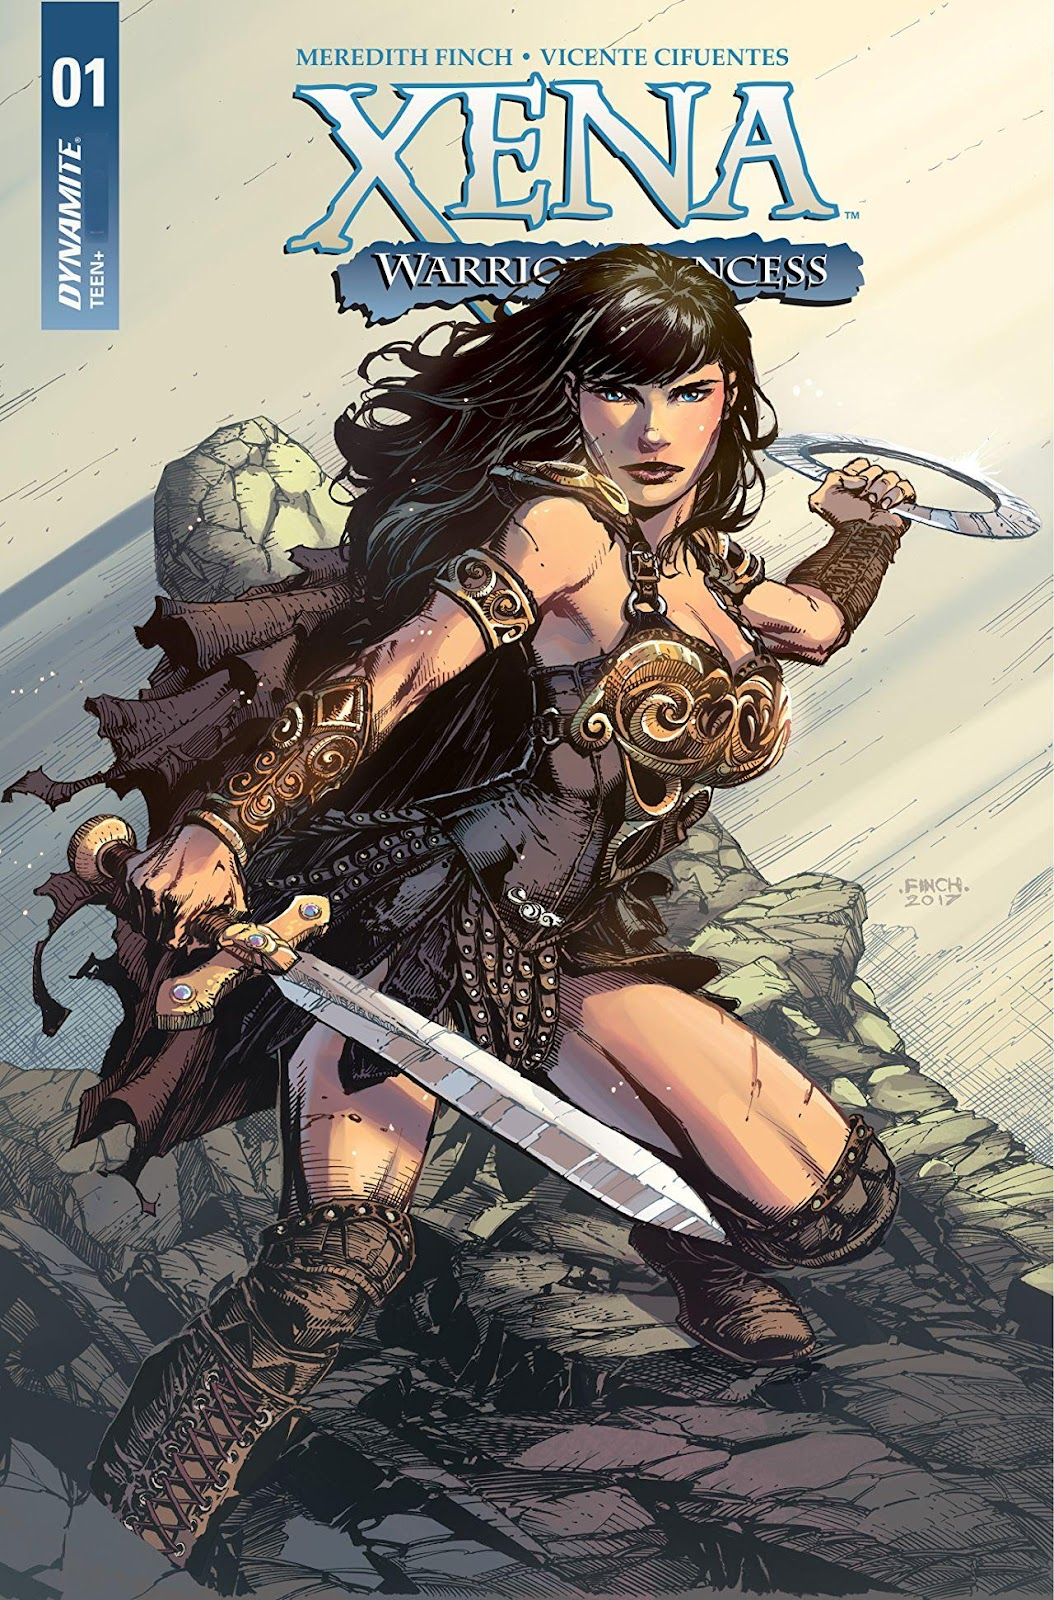 Xena: Warrior Princess Vol. 4 #1 Review